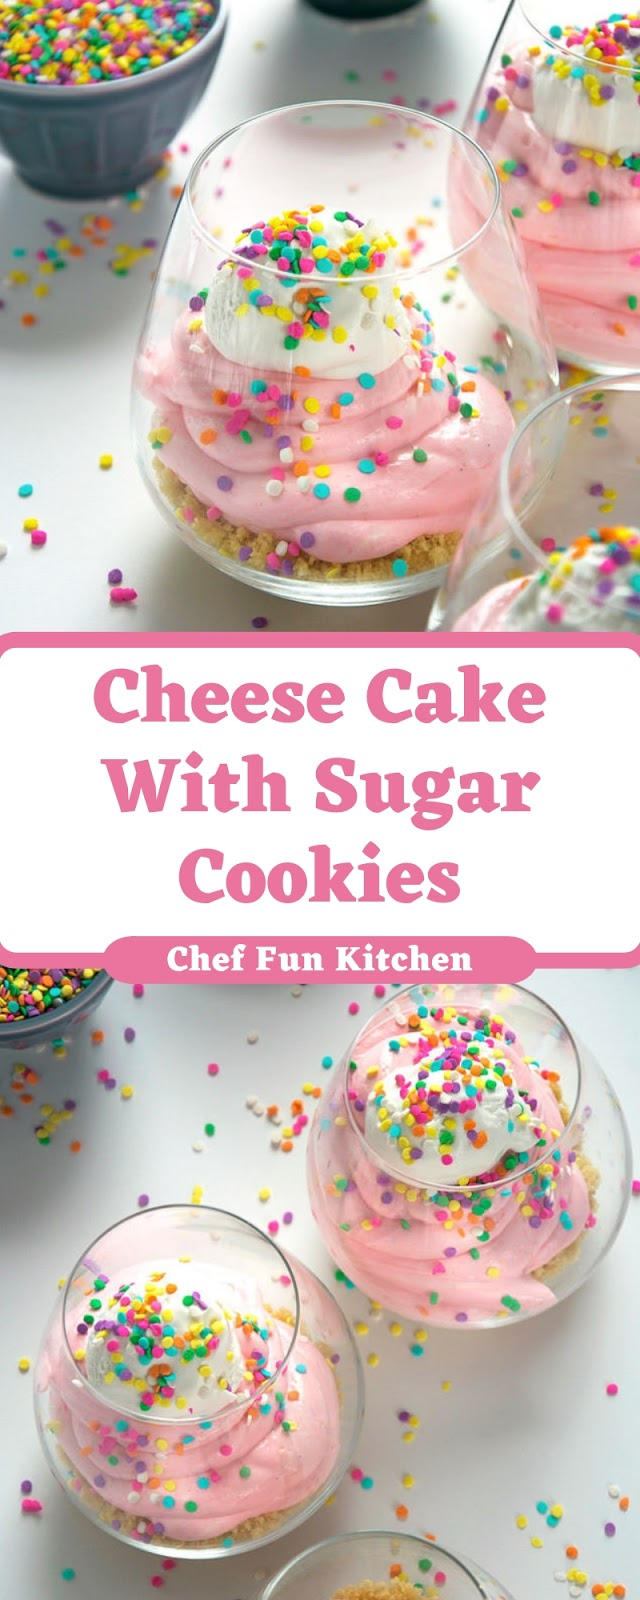 Cheese Cake With Sugar Cookies